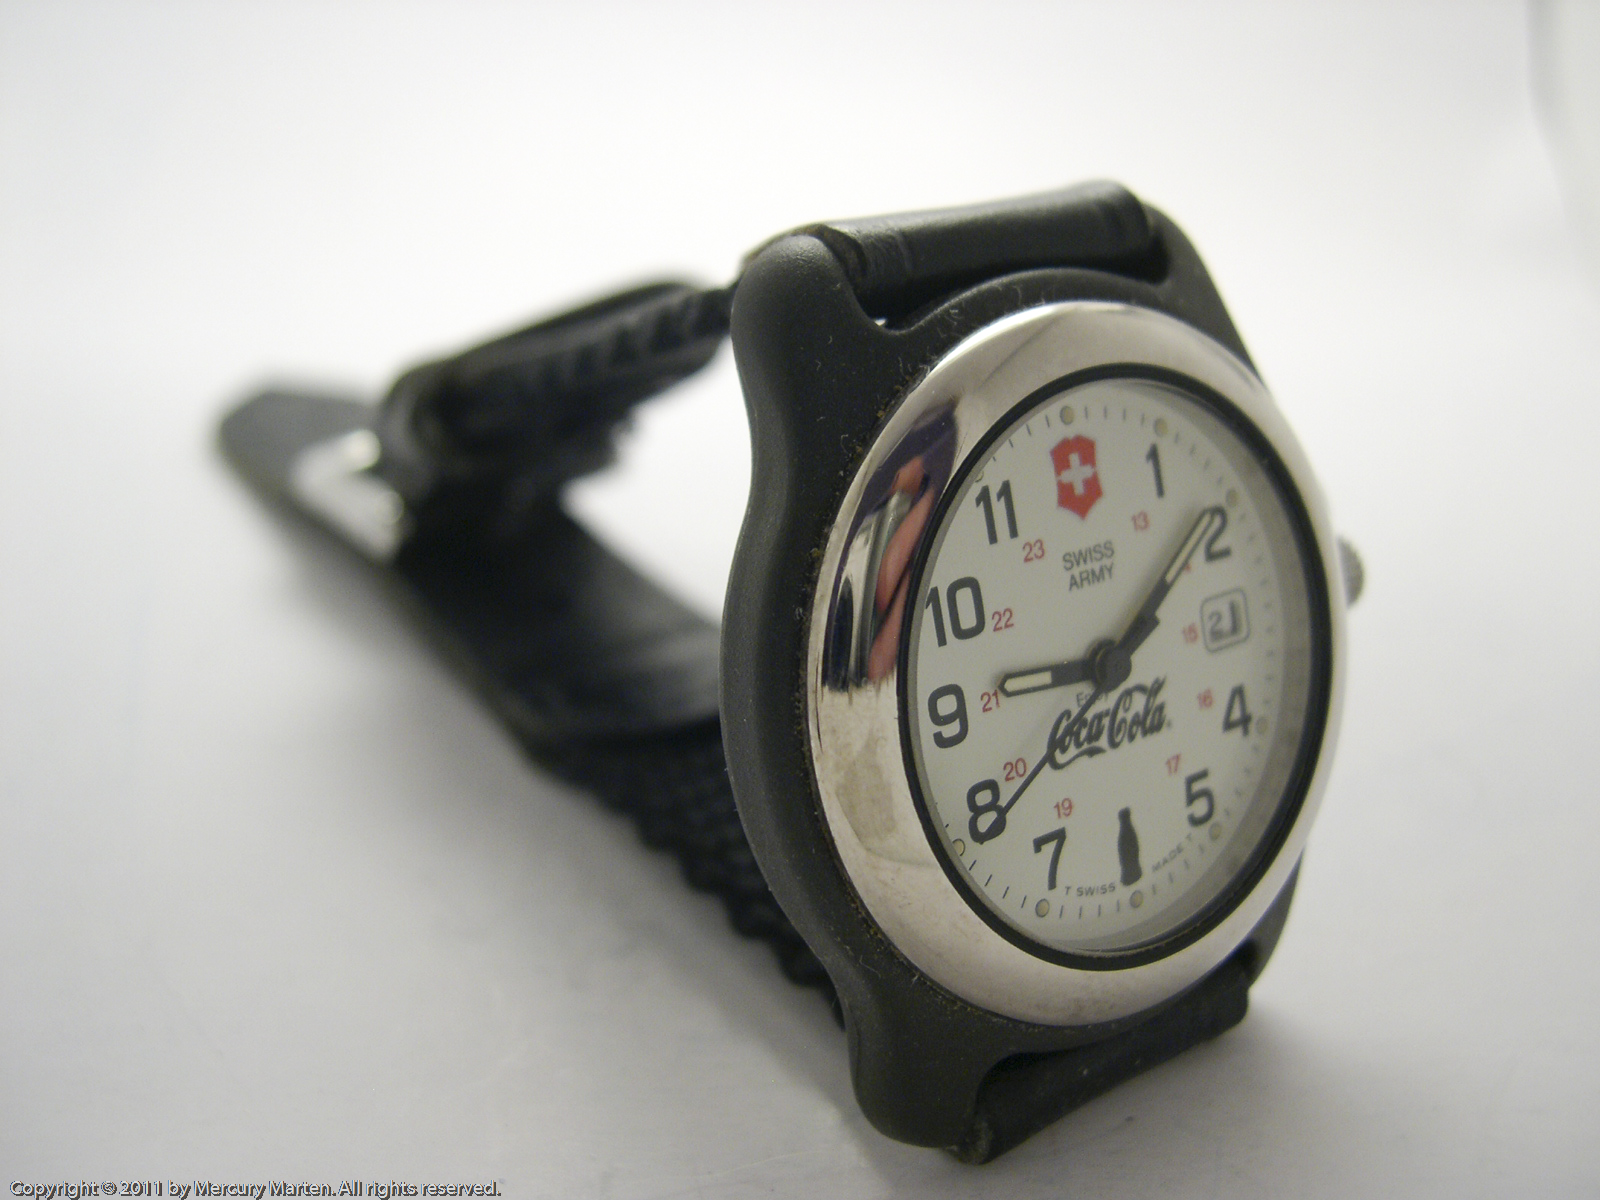 Swiss Army Wrist Watch